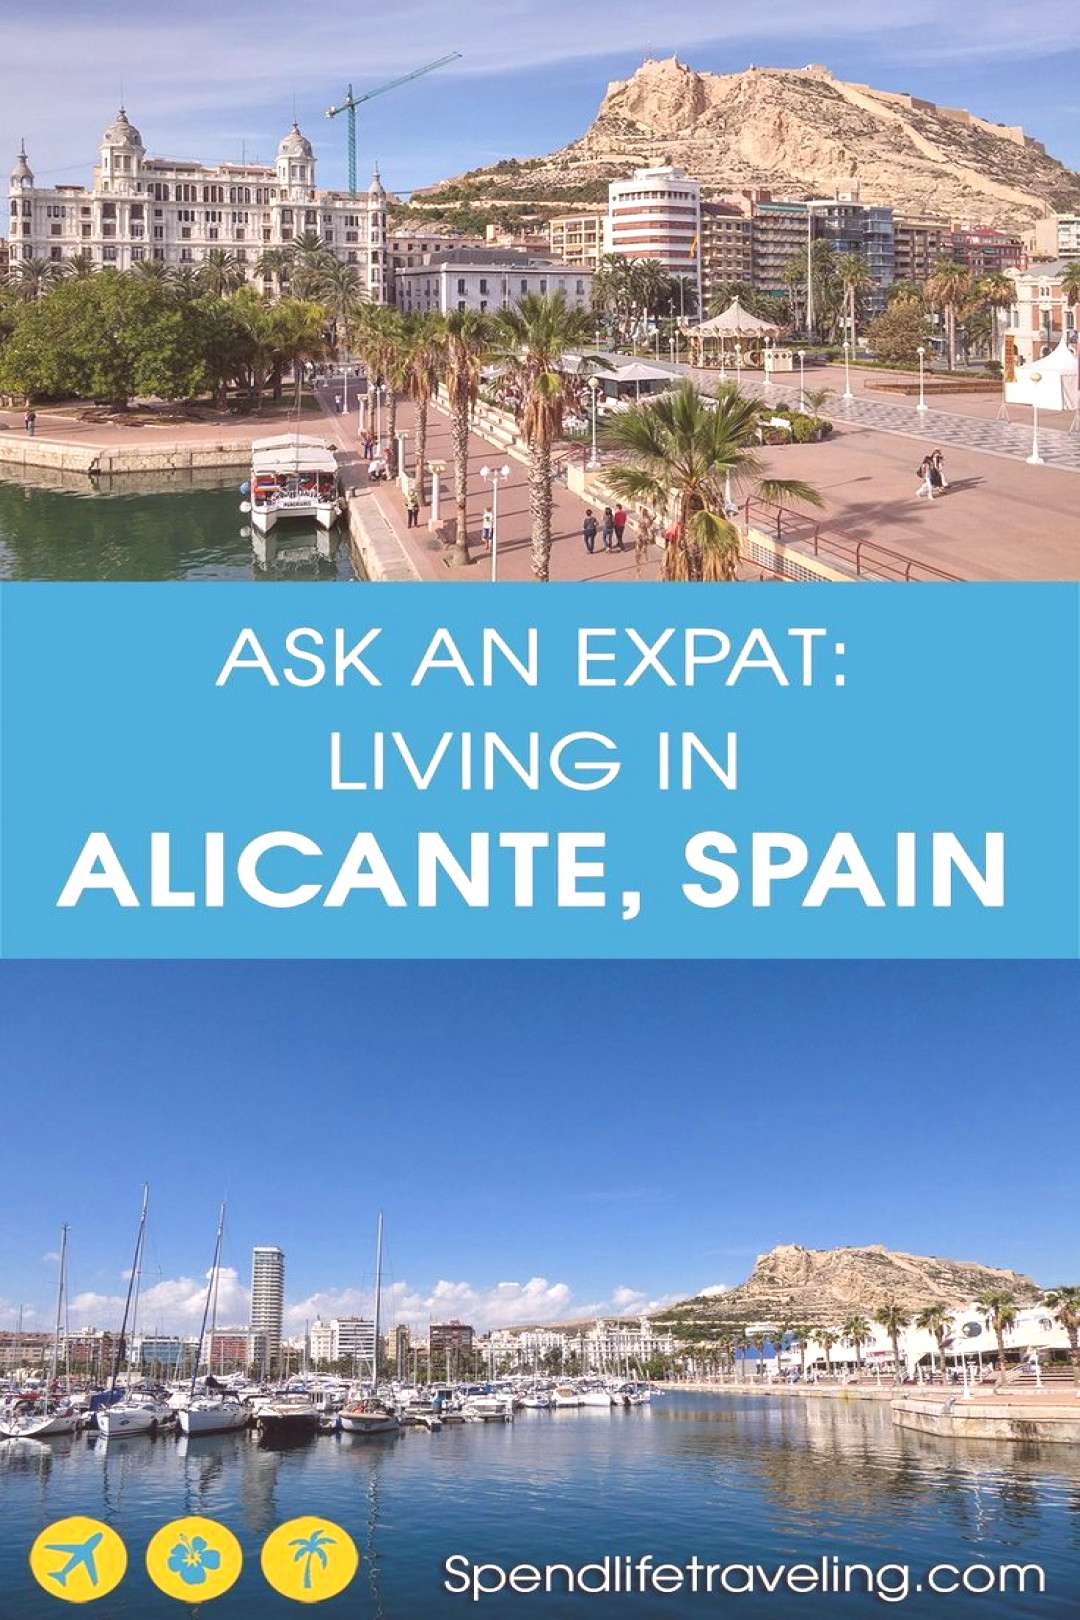 Interview with an expat about waht it's like to move to and live in Spain